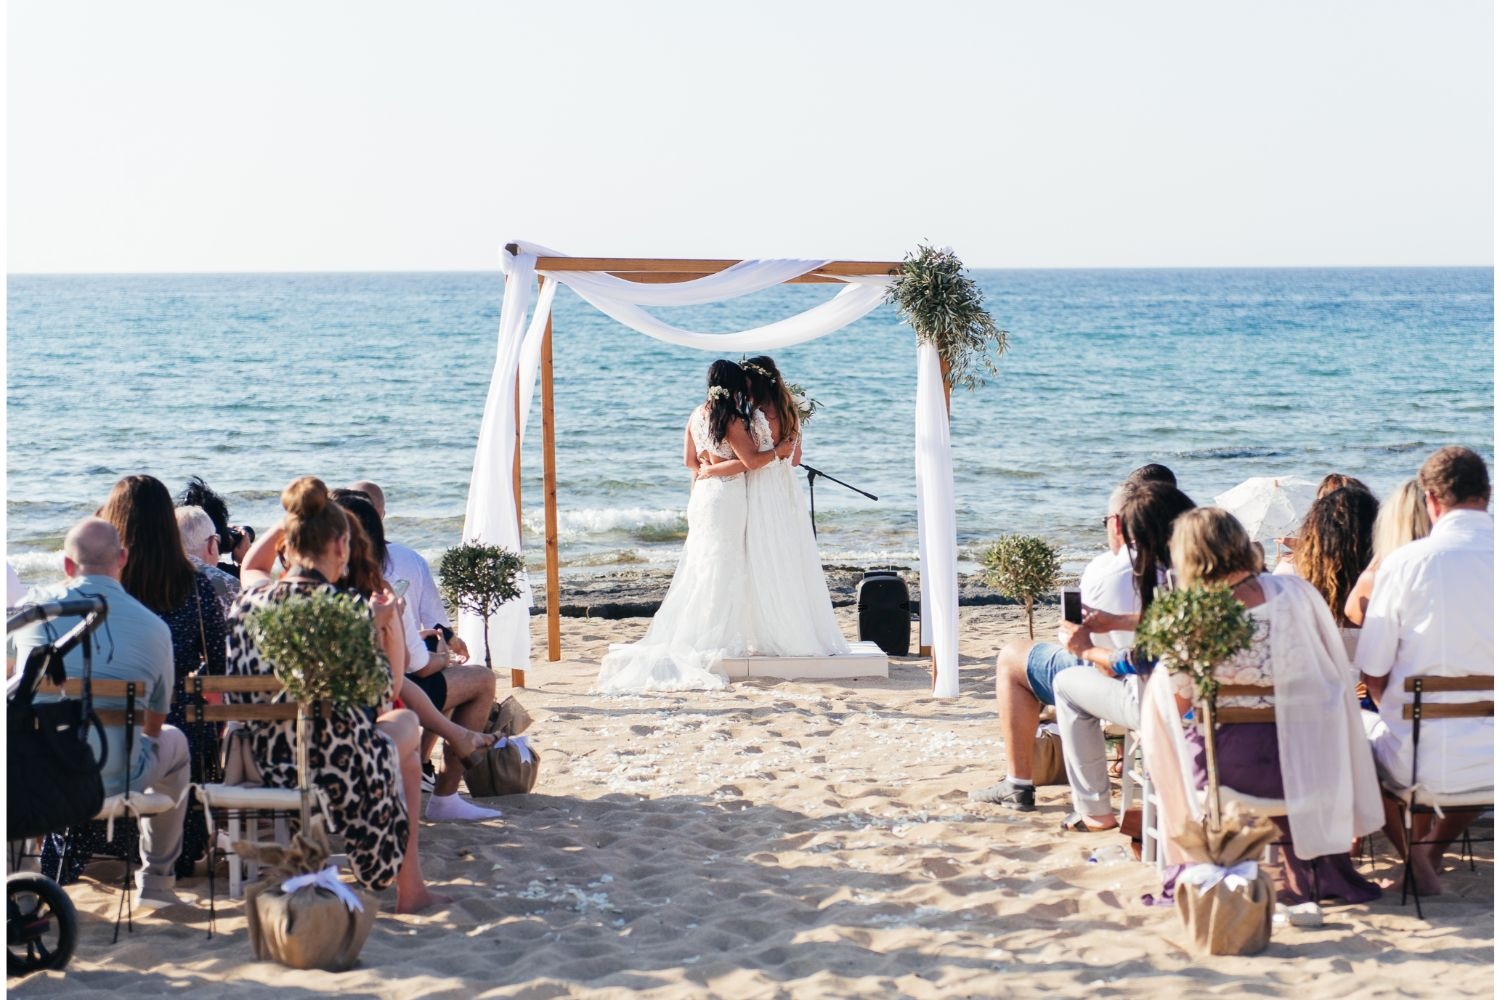 same-sex beach wedding ceremony in Crete